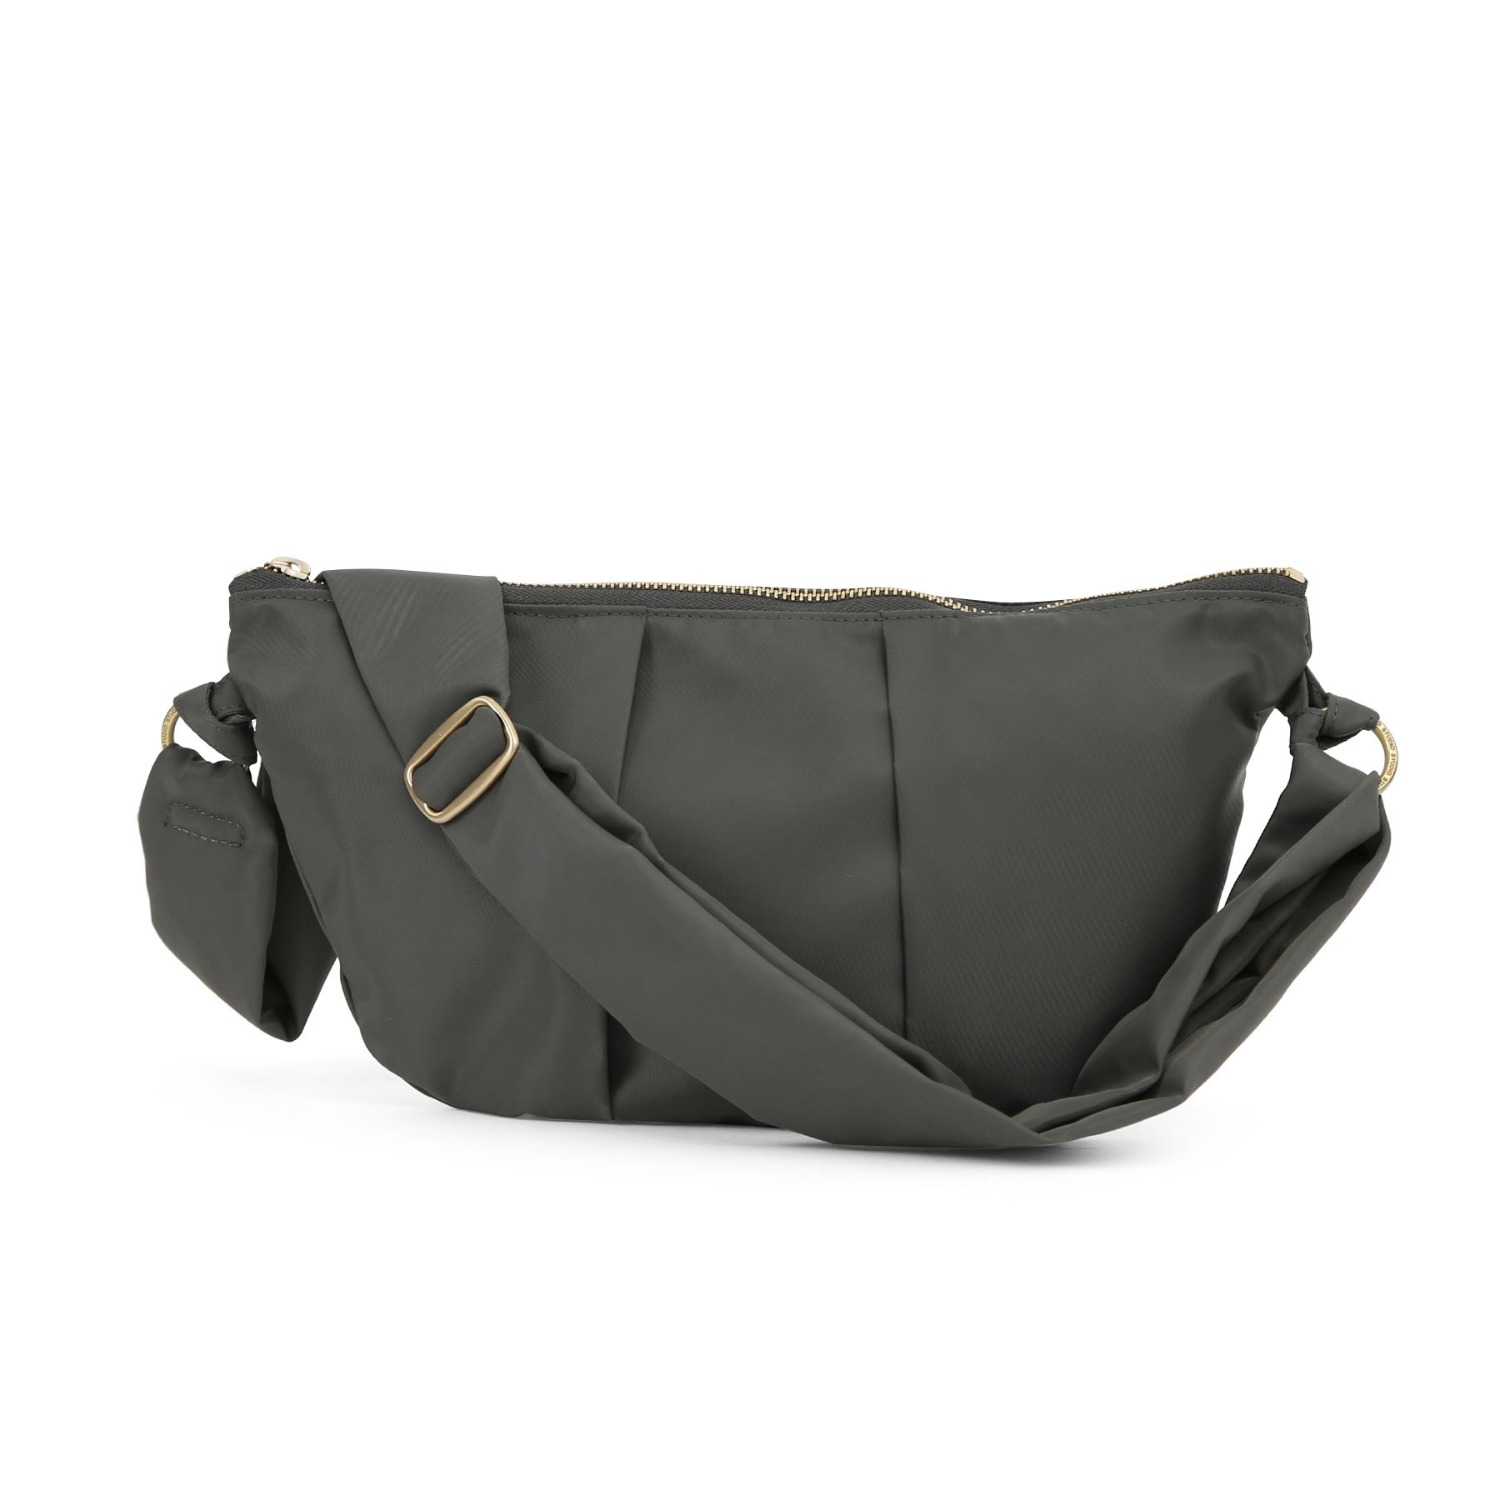 CRESCENT BAG / WRINKLE / N TWILL / OLIVE GREEN